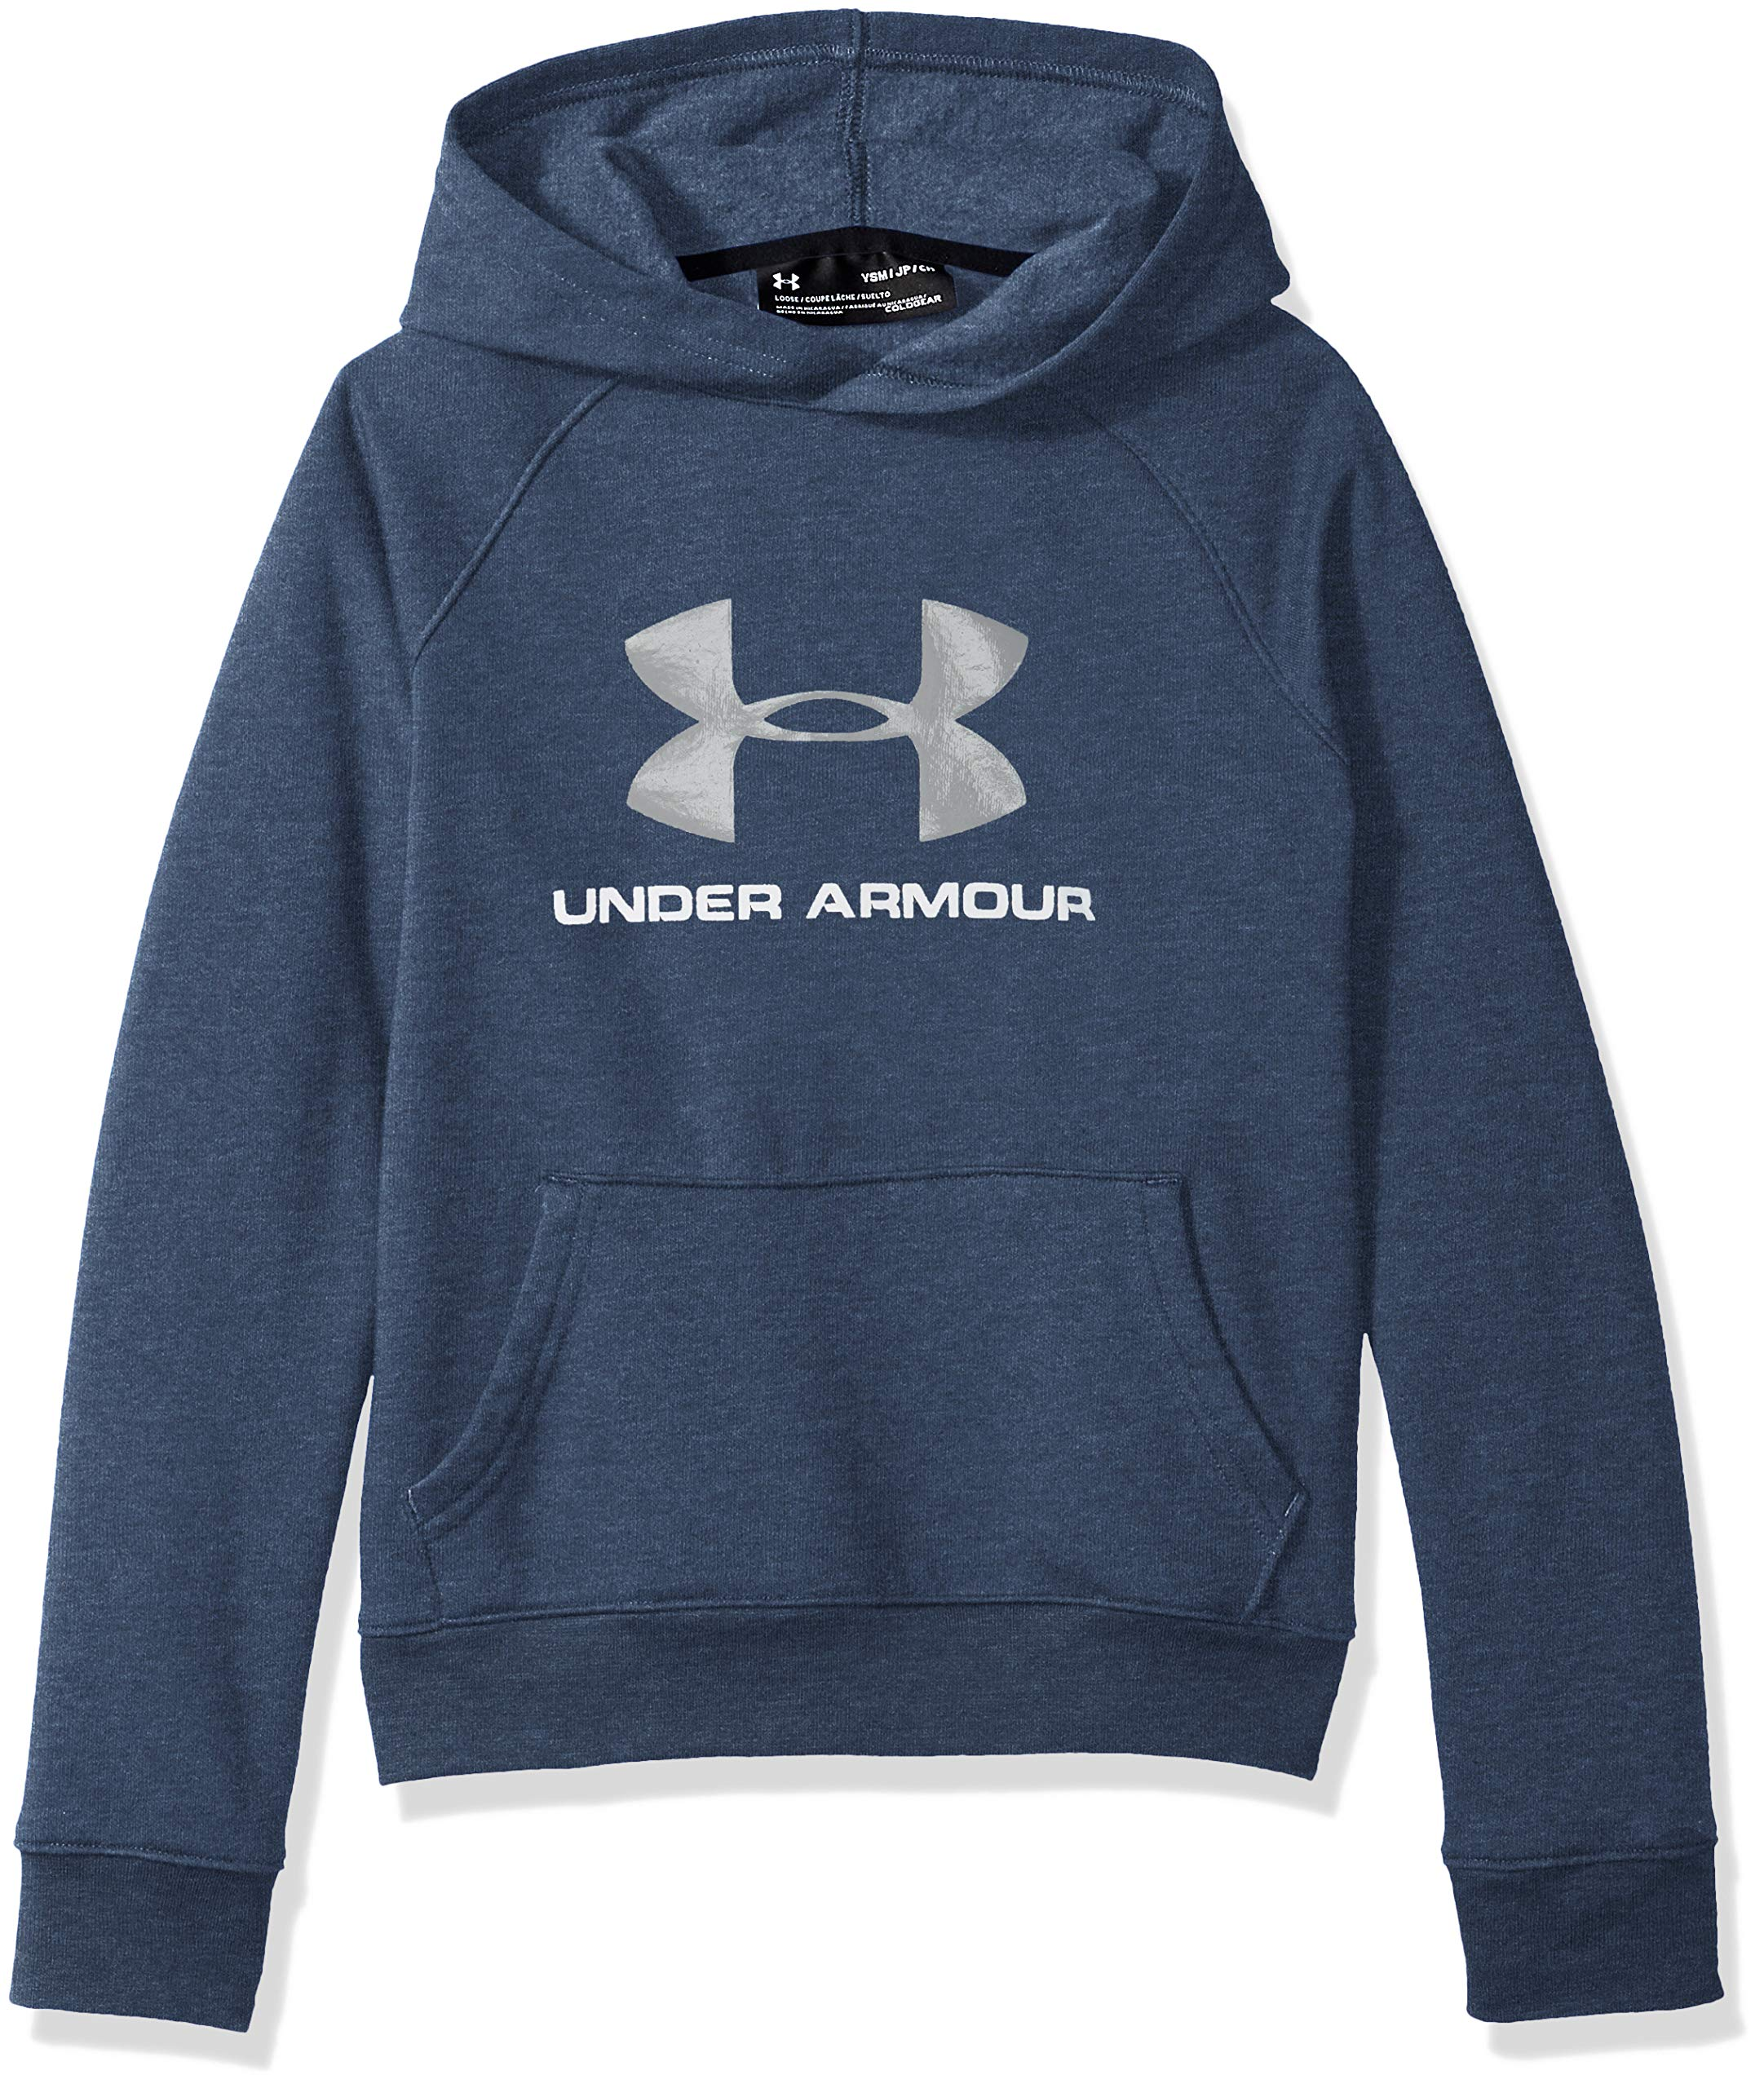 Under Armour Boys Rival Logo Hoodie, Academy Light Heathe (409)/Steel, Youth Small by Under Armour